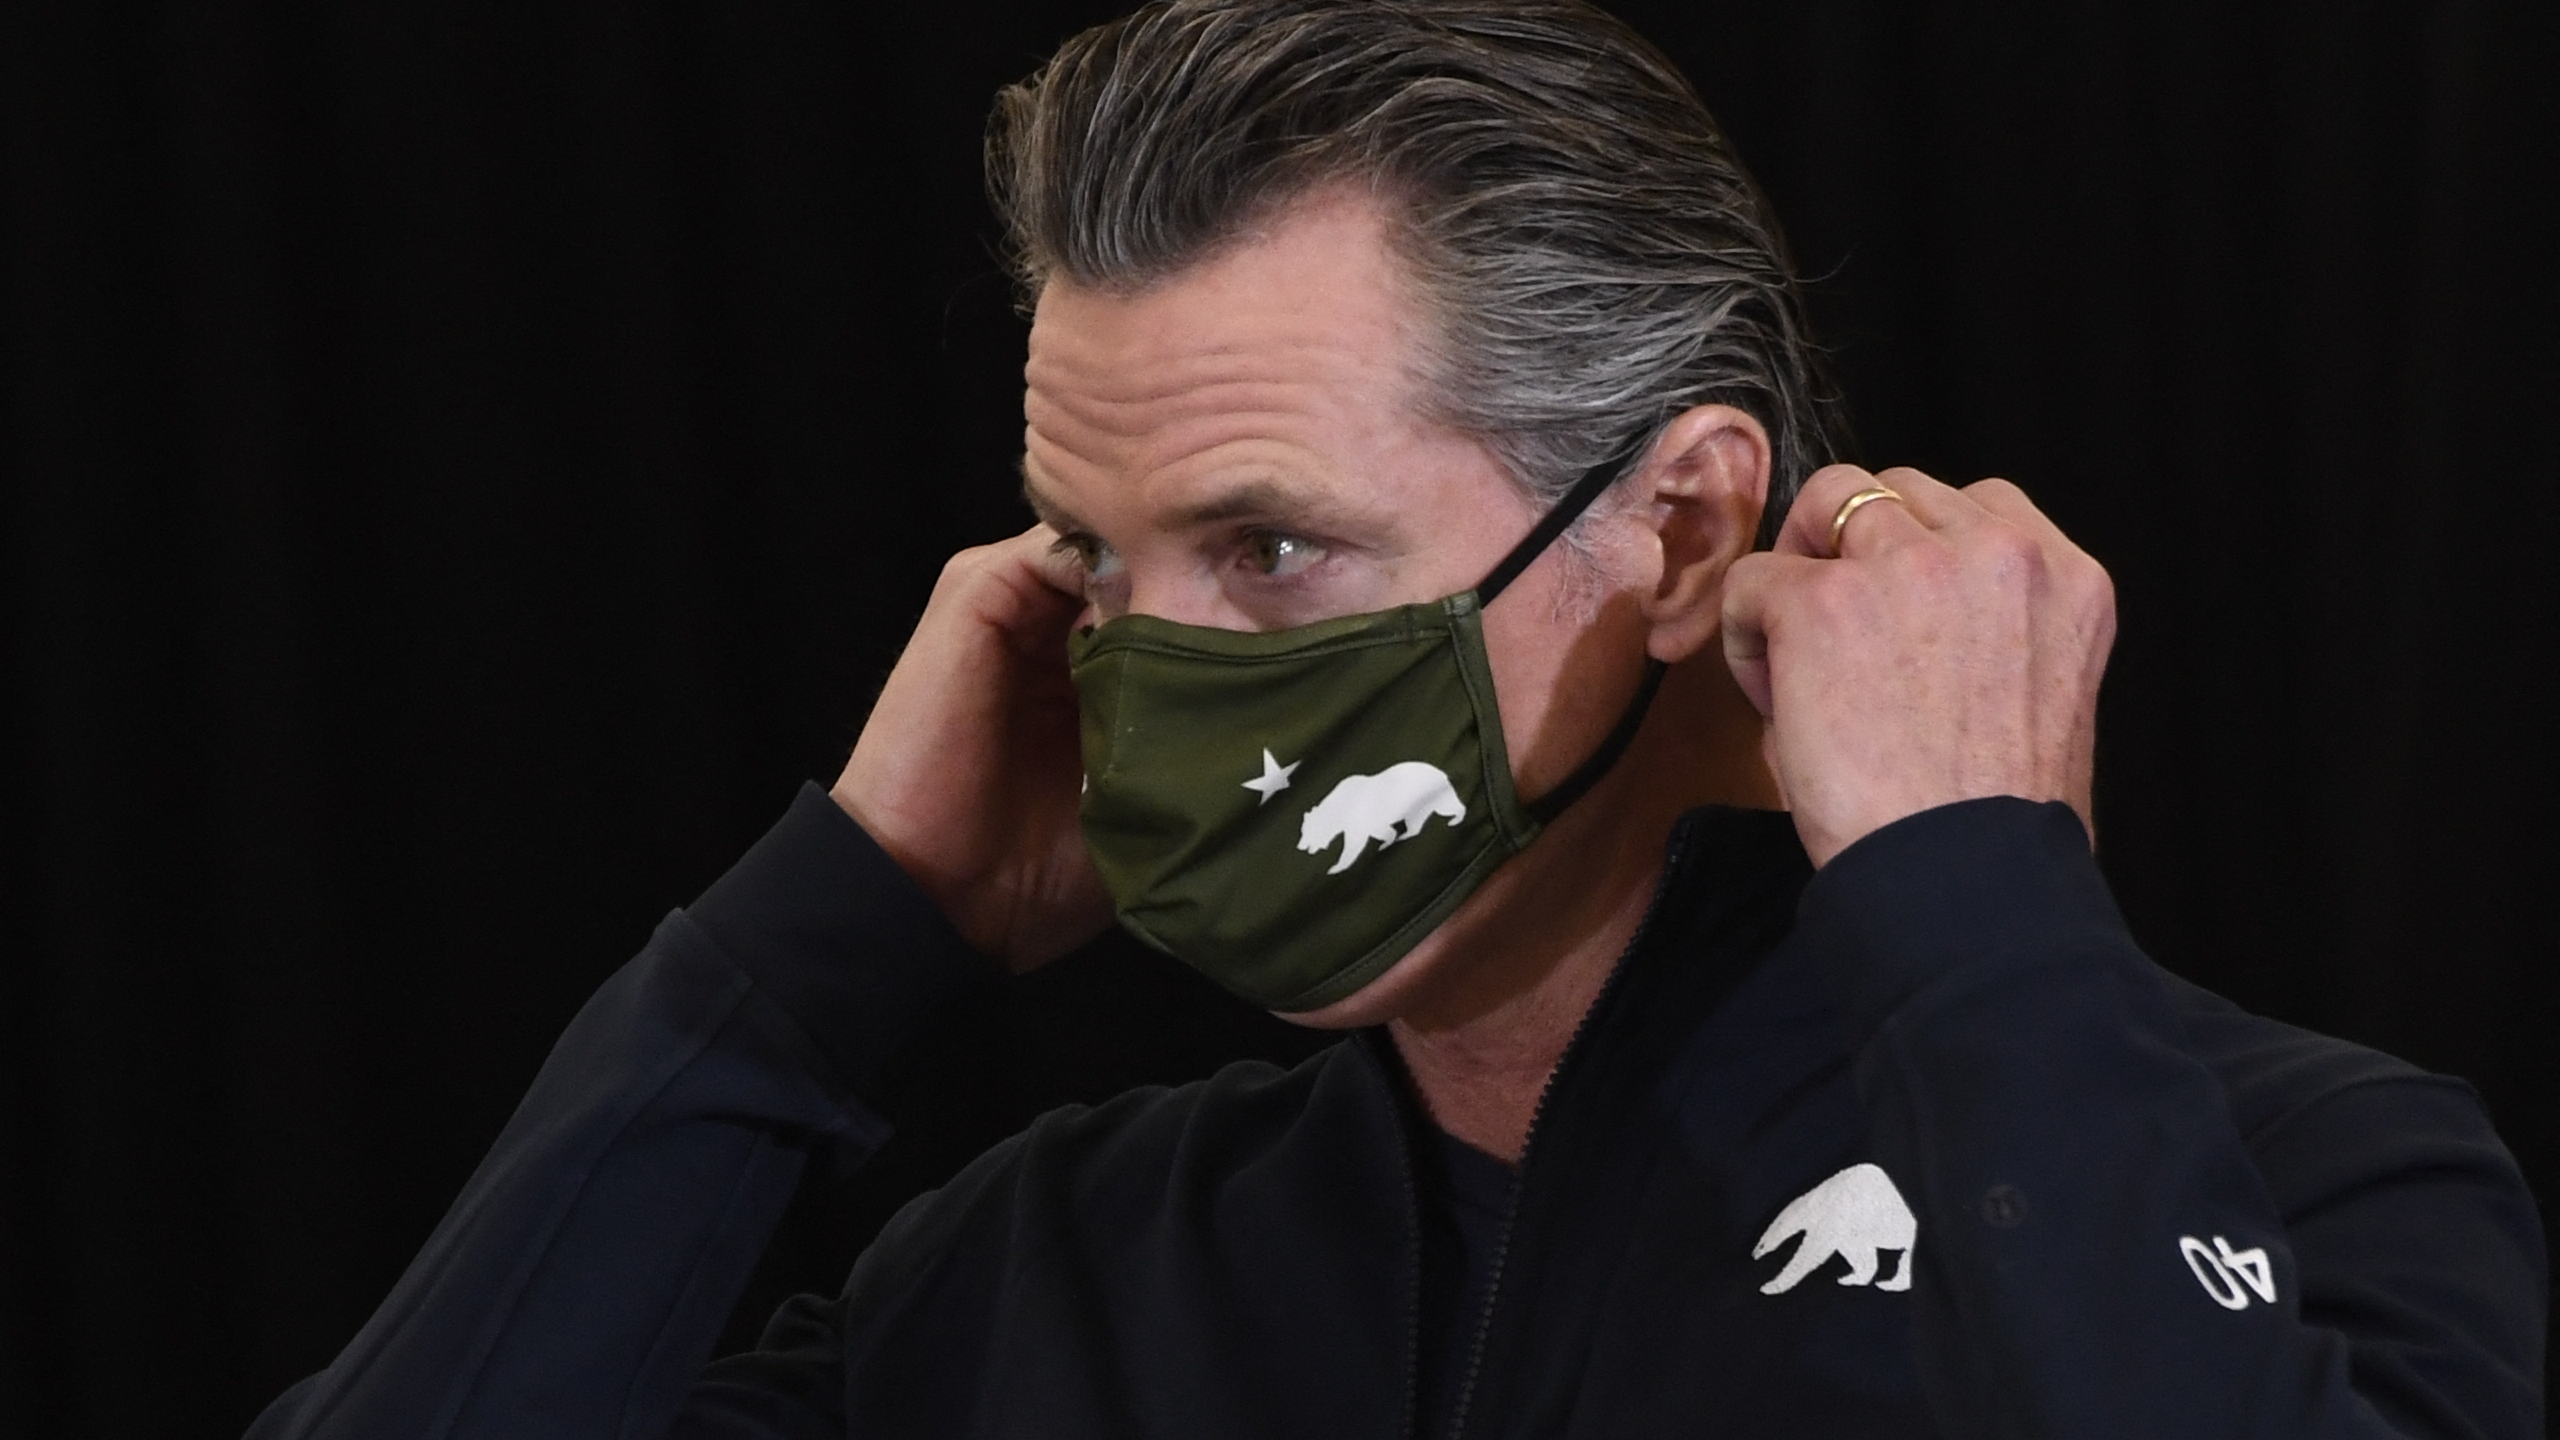 California Governor Gavin Newsom puts on his facemask after speaking to the media in Los Angeles on April 1, 2021. (PATRICK T. FALLON/AFP via Getty Images)